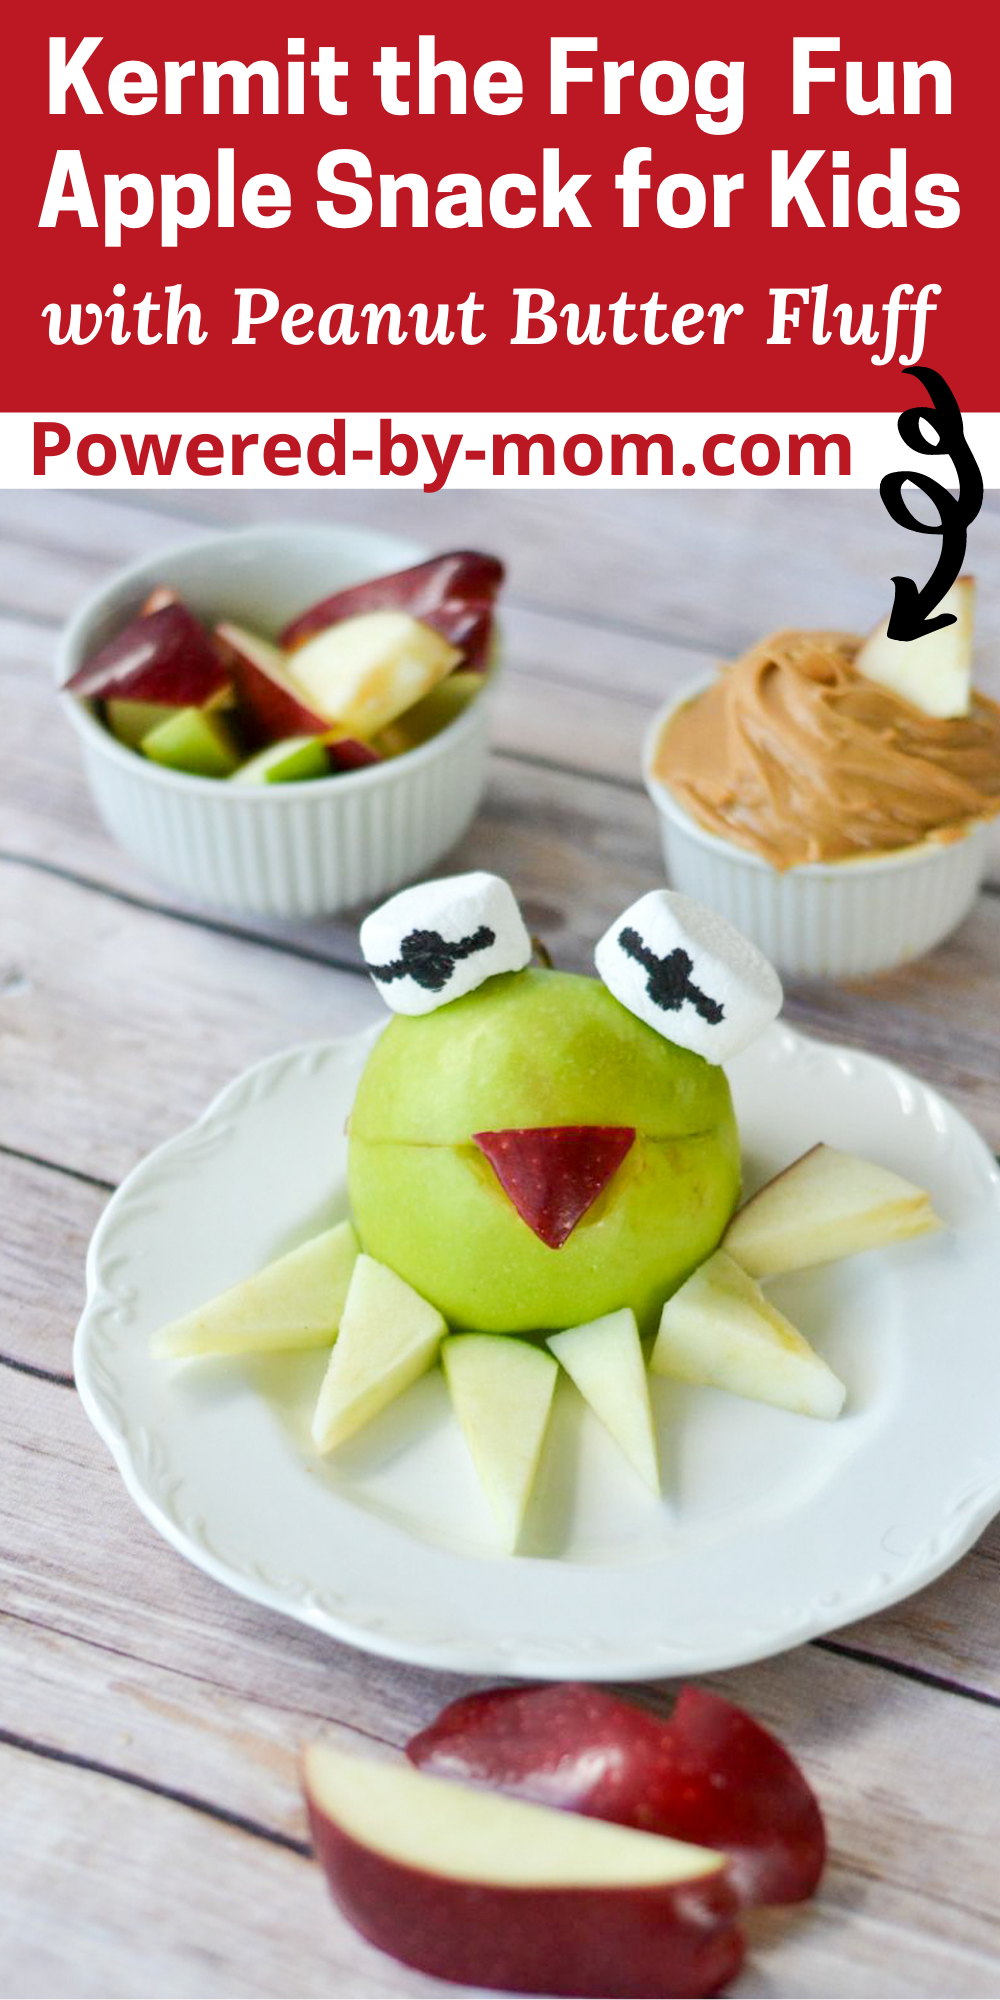 Do you struggle trying to get your kids to eat healthy snacks? Try this fun healthy snack for kids in the shape of the Muppet's Kermit the Frog. It's a fun and tasty treat that's healthy with apples and a peanut butter fluff dip!